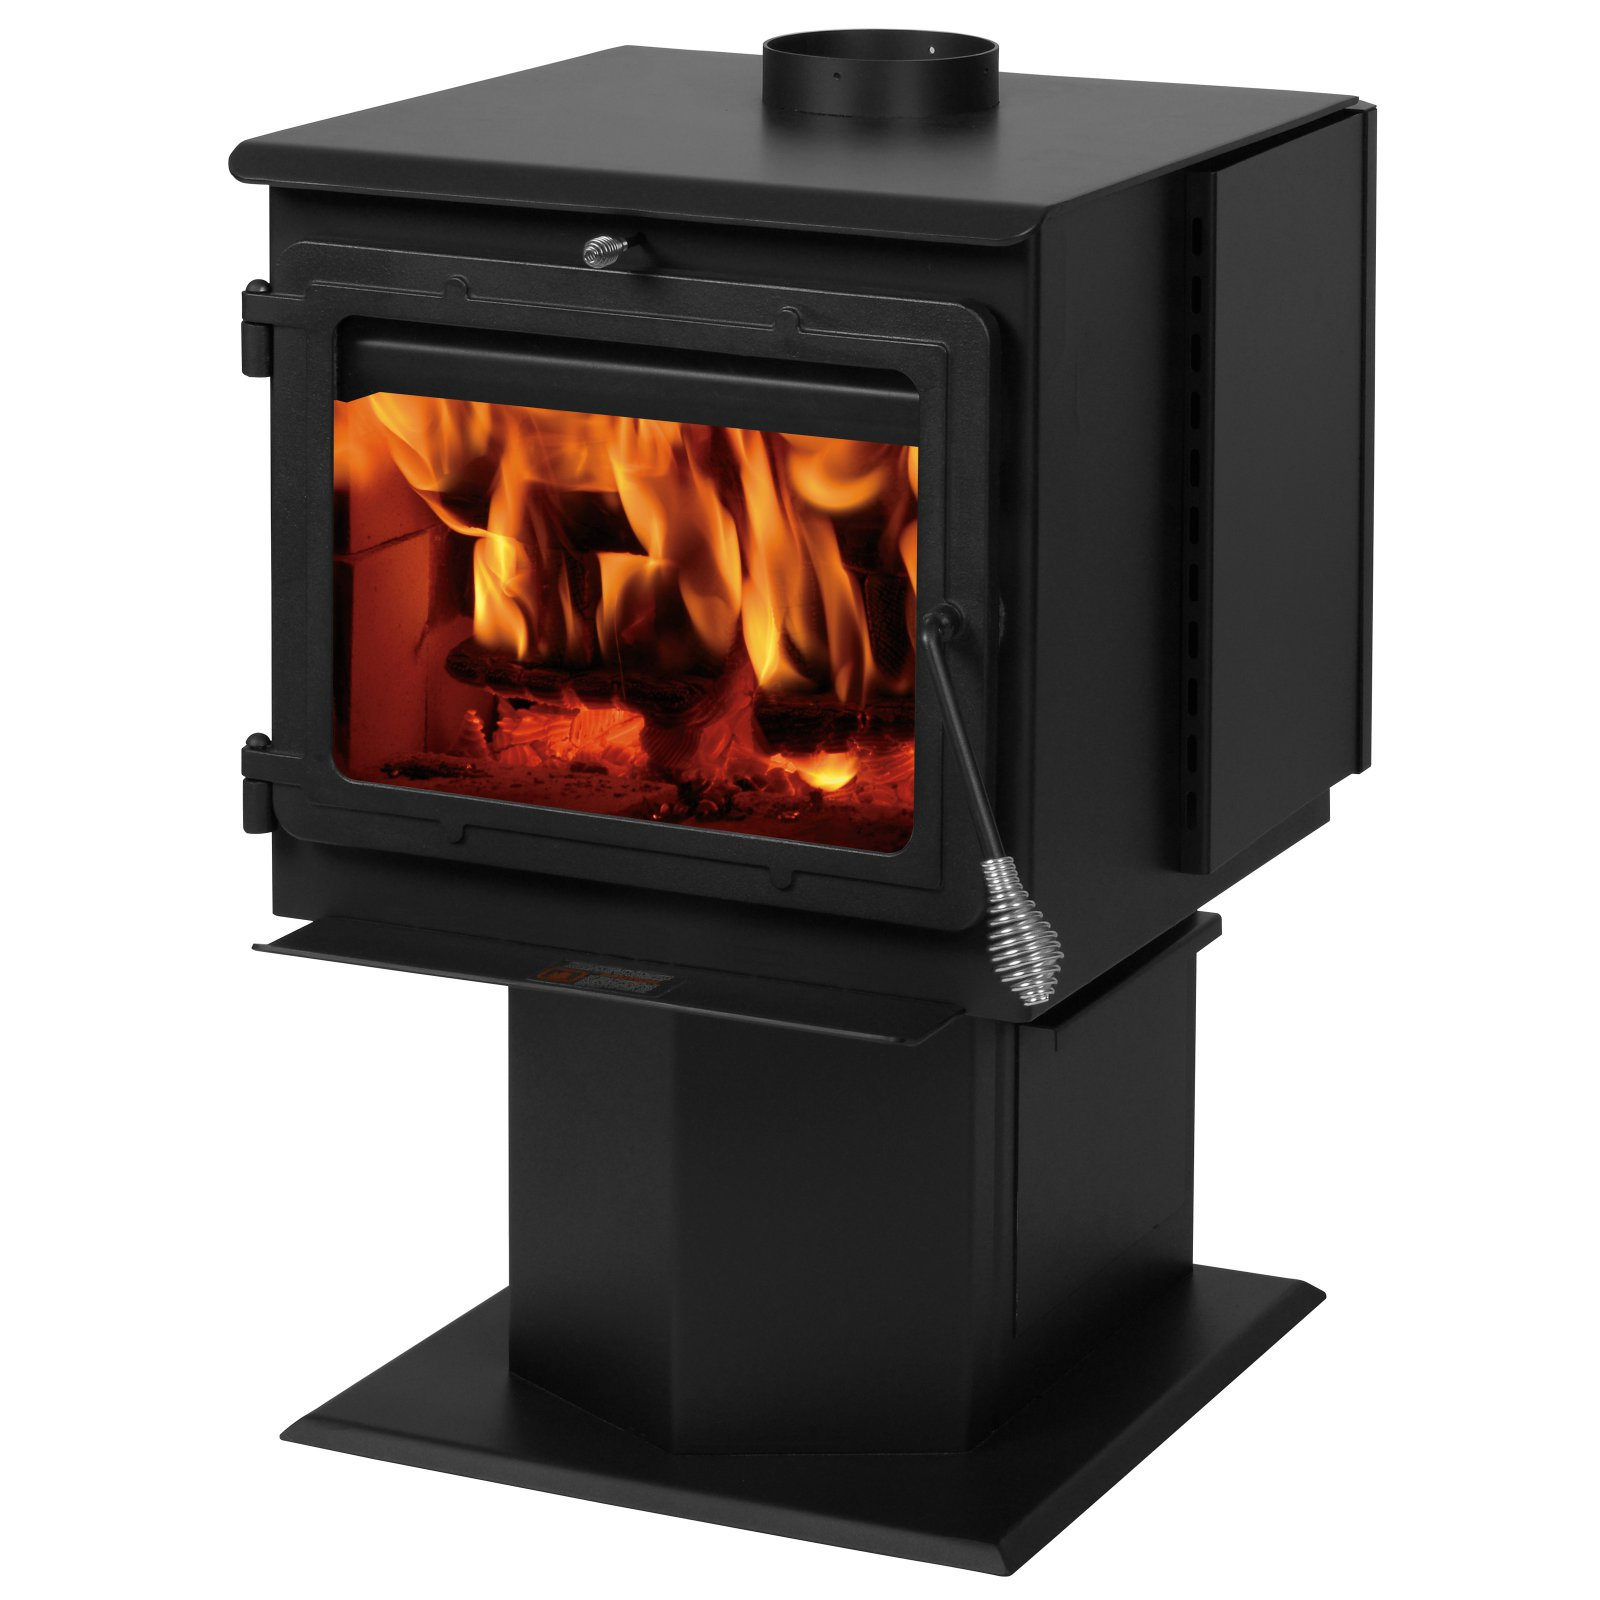 Summers Heat Smartstove Wood Burning Stove